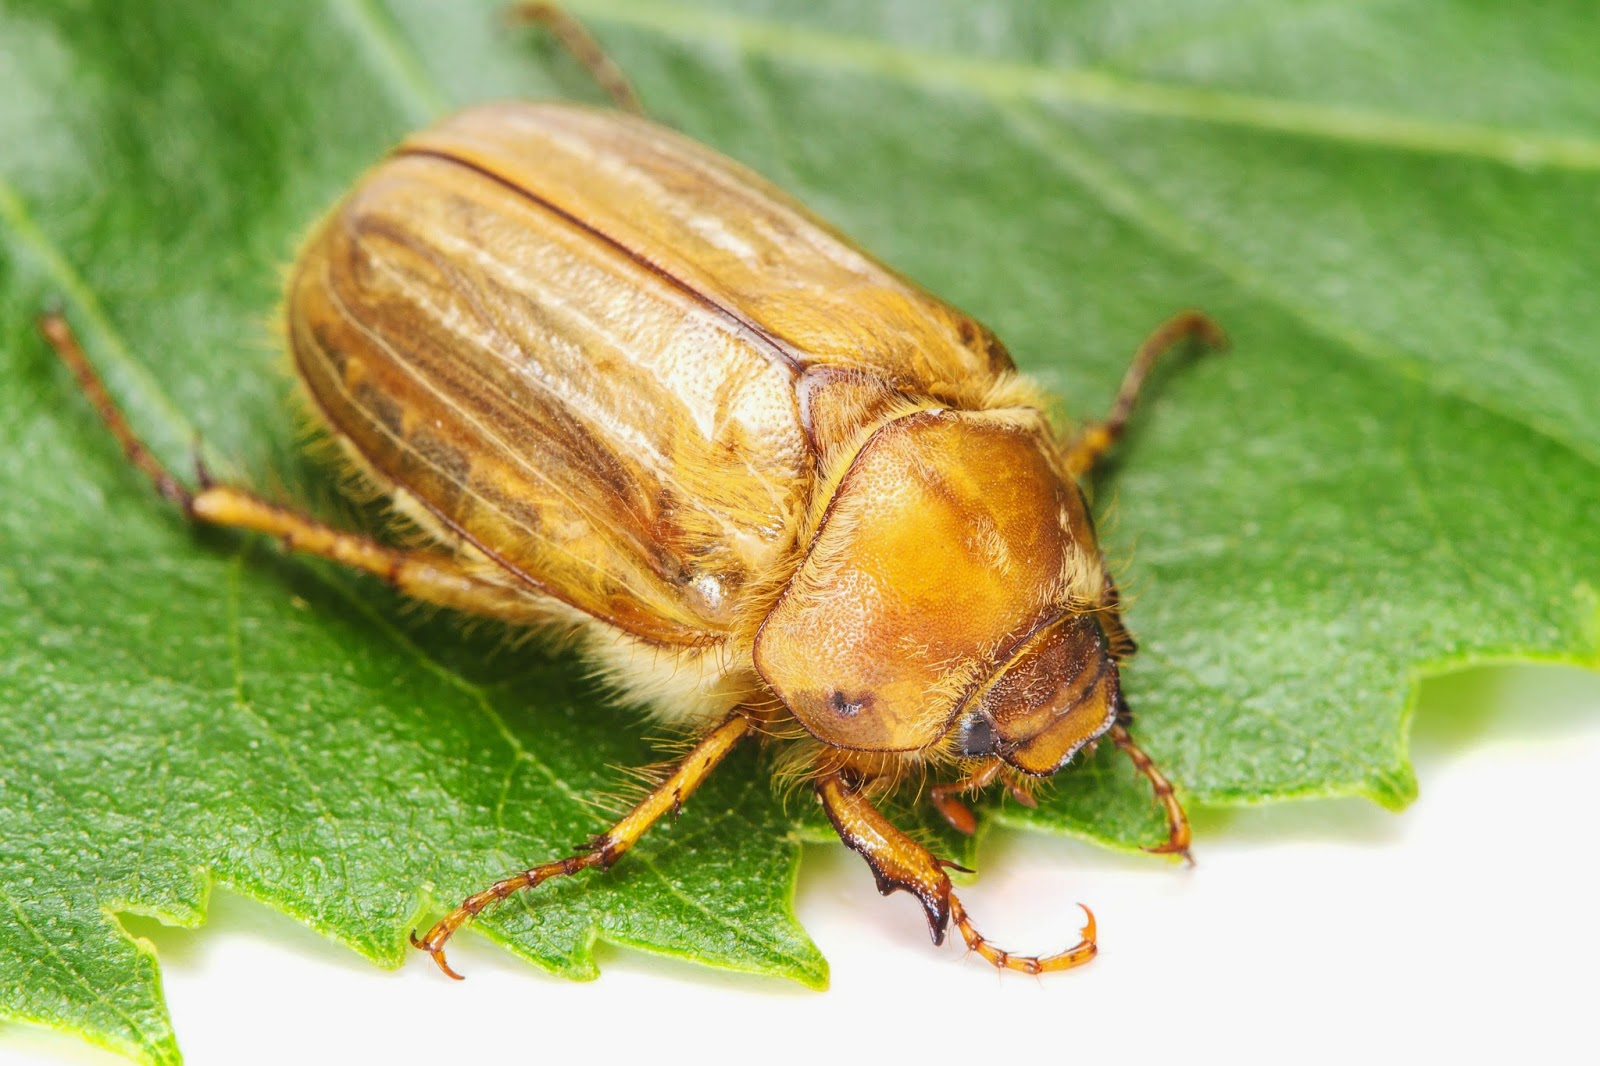 june bug Little brown beetles famous for thier incesant bumping into porch lights and houses on a late spring to summer evening often tries to sneak into houses, either by flying right in when the door is open, or by hitching a ride on somebody's clothes like a little ninja.